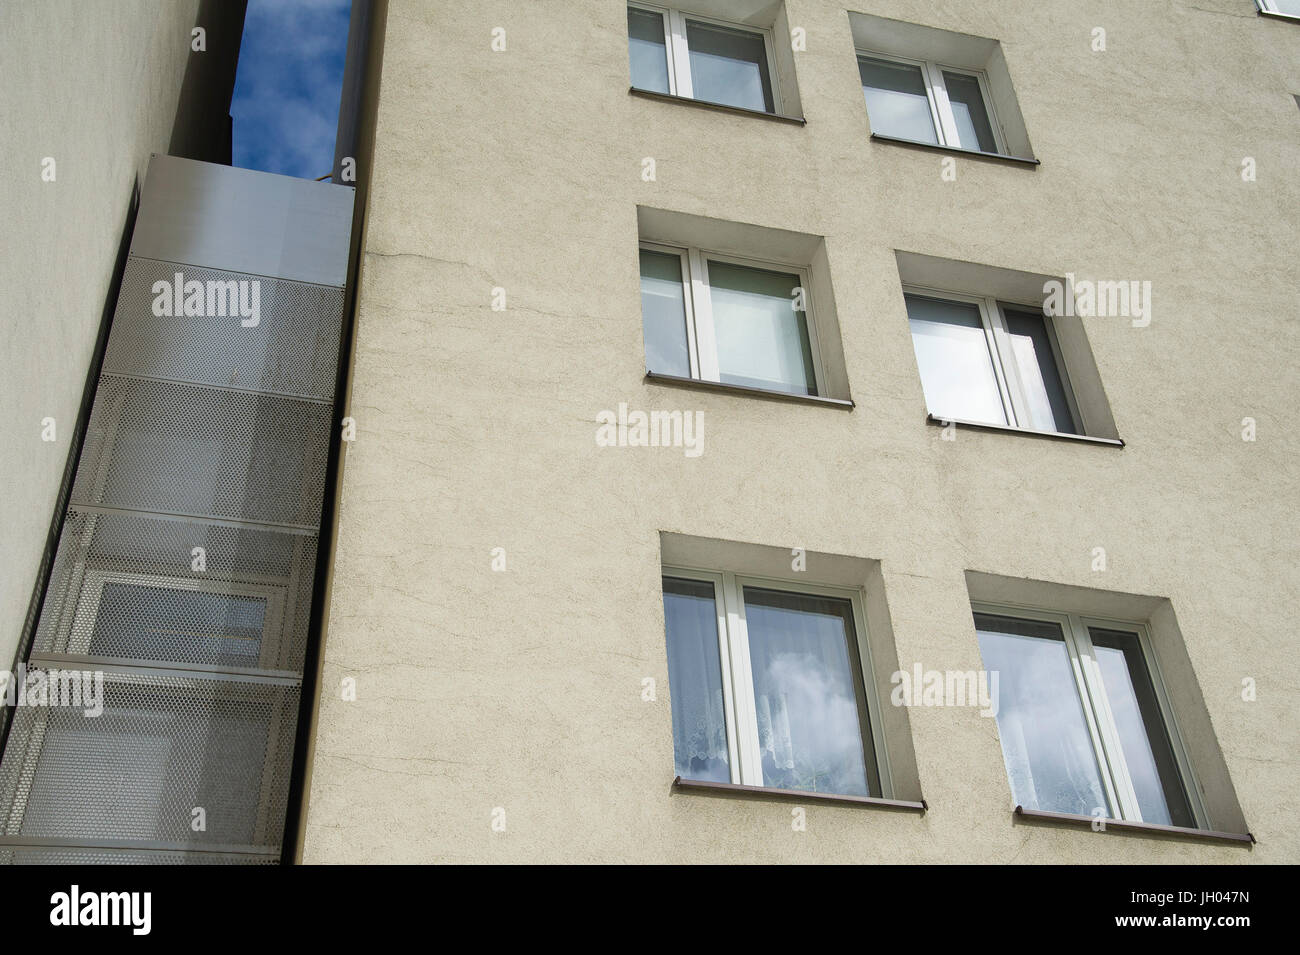 Narrowest House Stockfotos & Narrowest House Bilder - Alamy